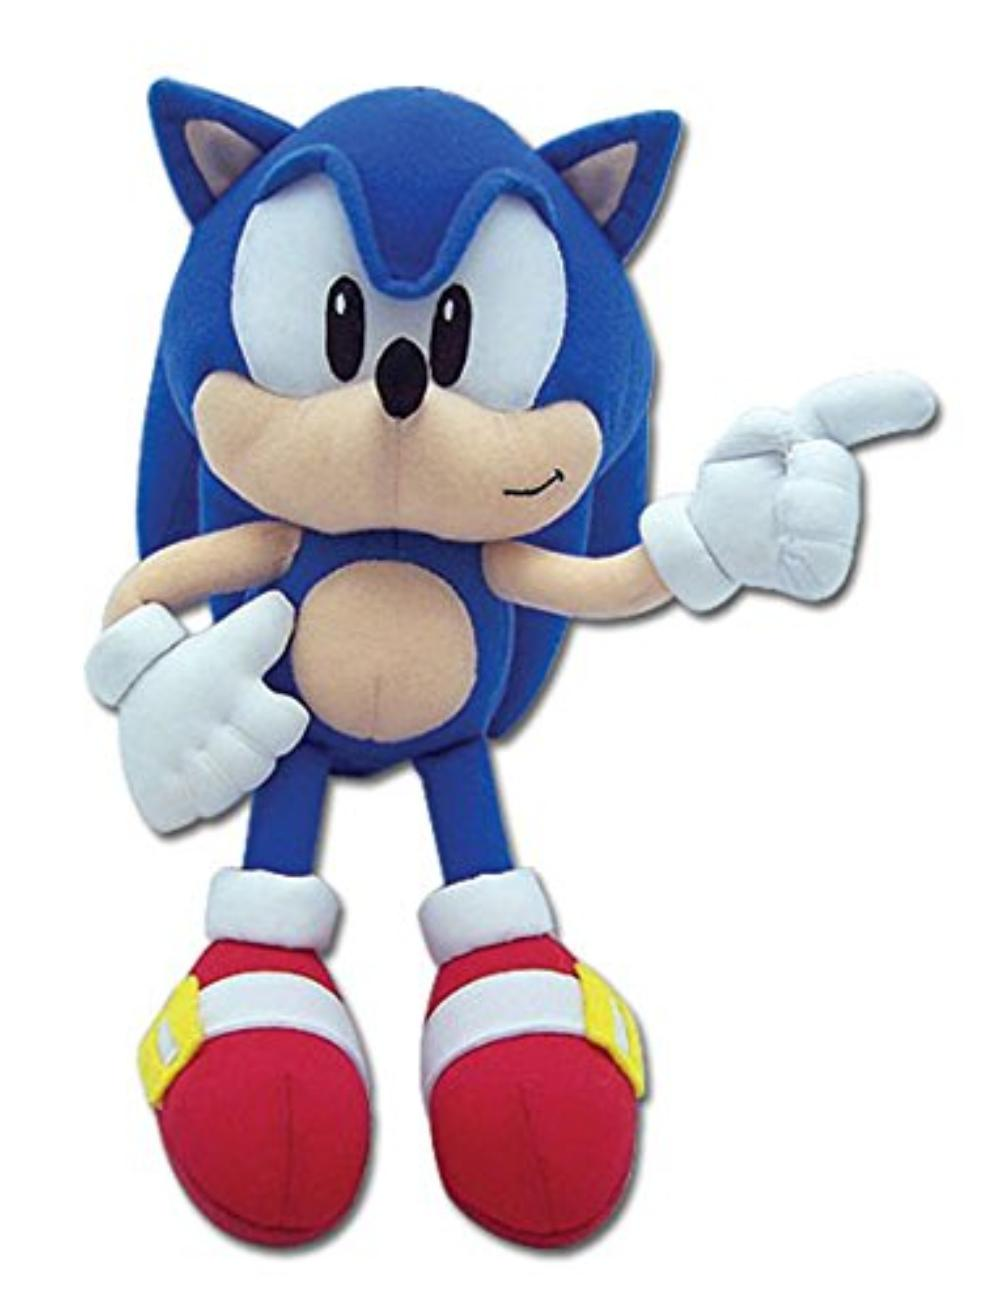 Sonic The Hedgehog Classic Sonic 9 Plush Collect All Your Favorite Sonic The Hedgehog Characters With These Awesome Plushies By Great Eastern Walmart Com Walmart Com